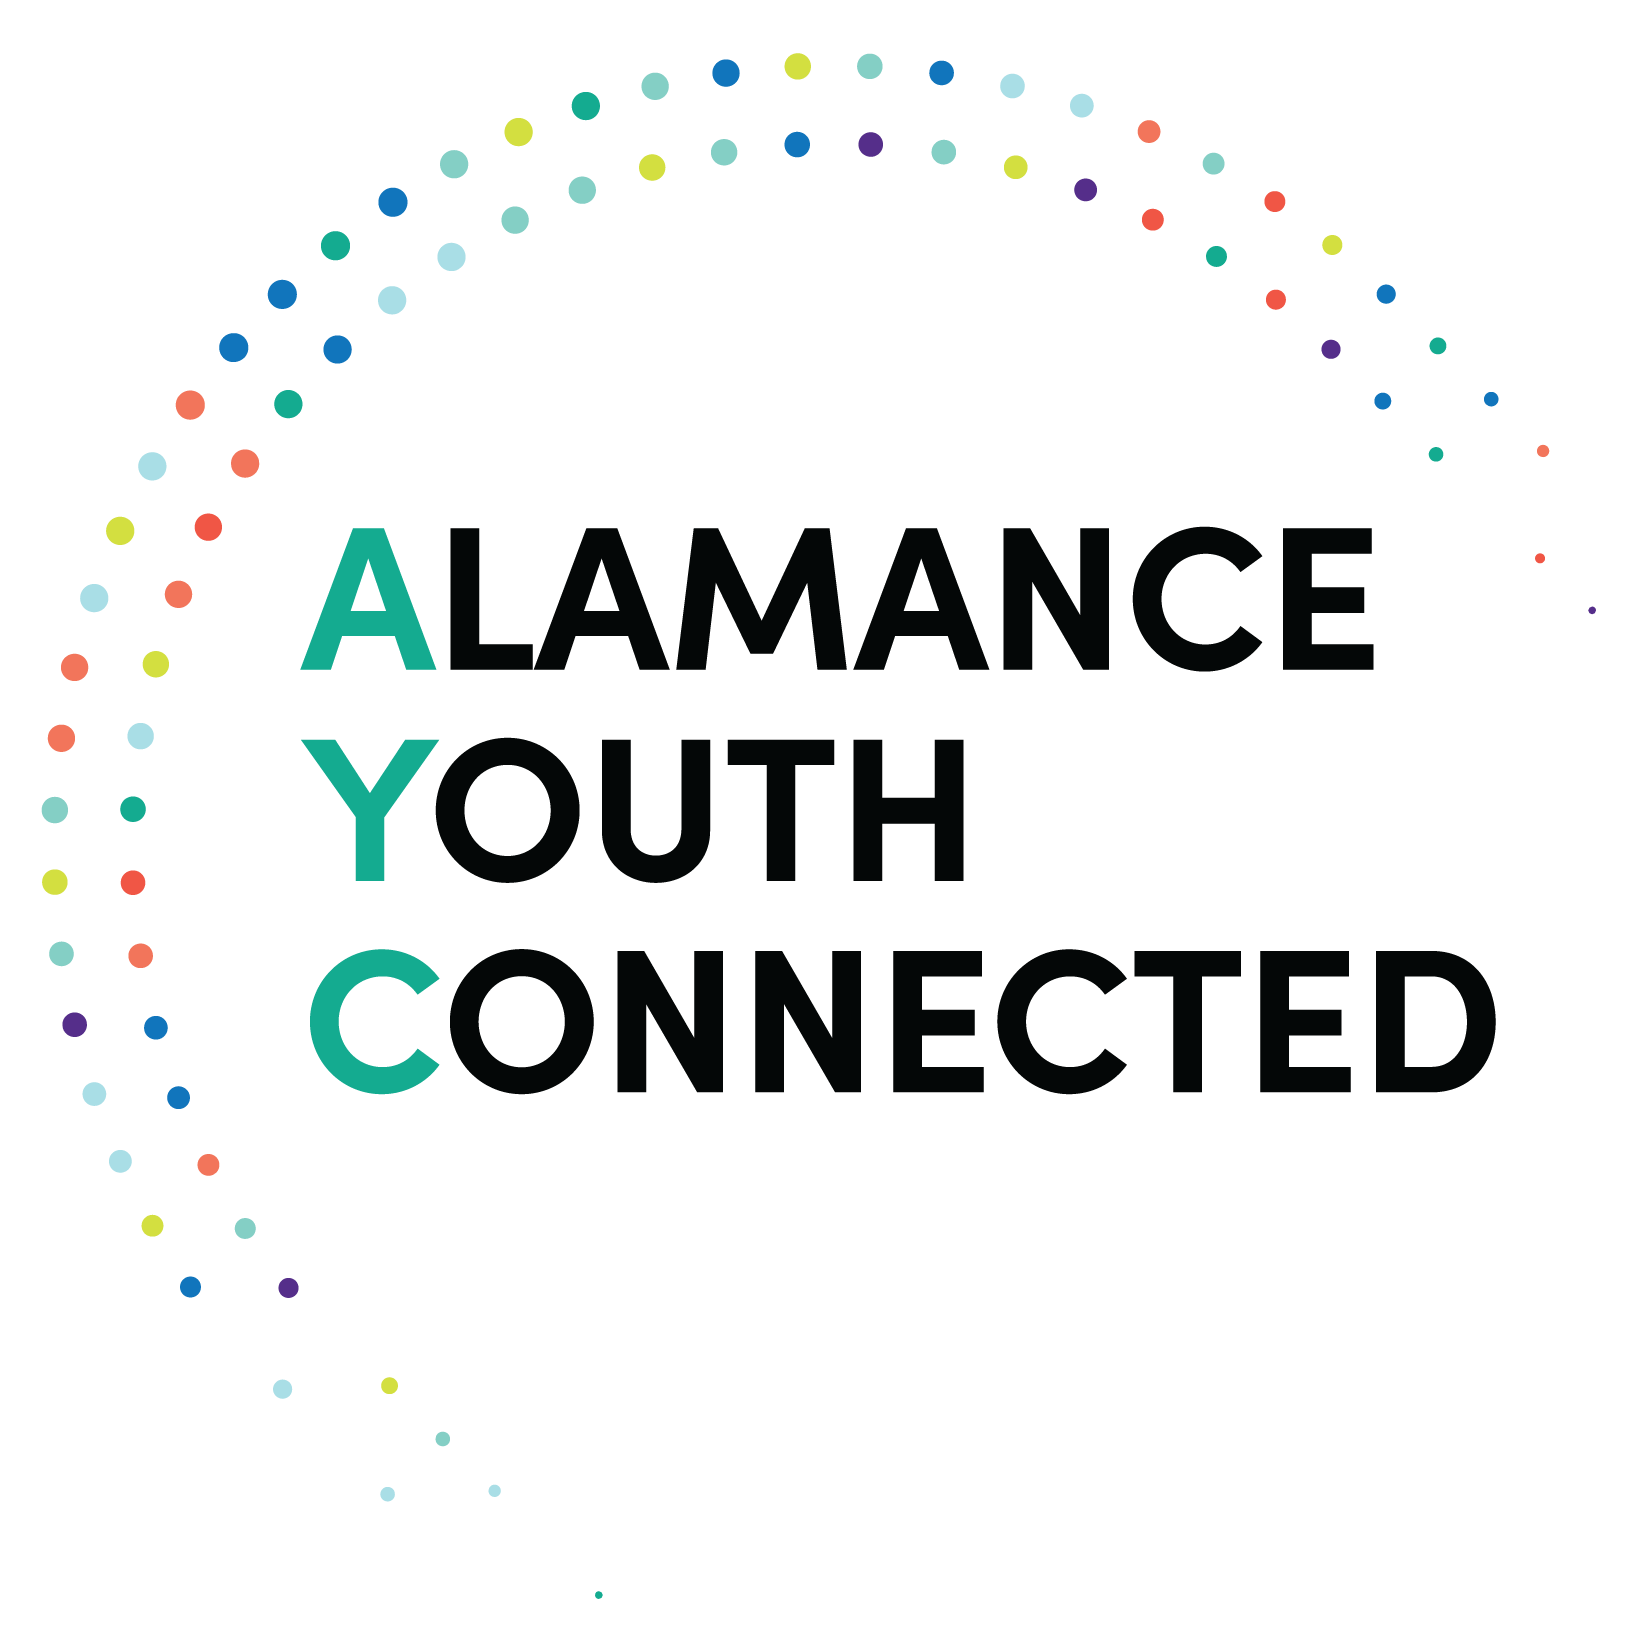 Alamance Youth Connected